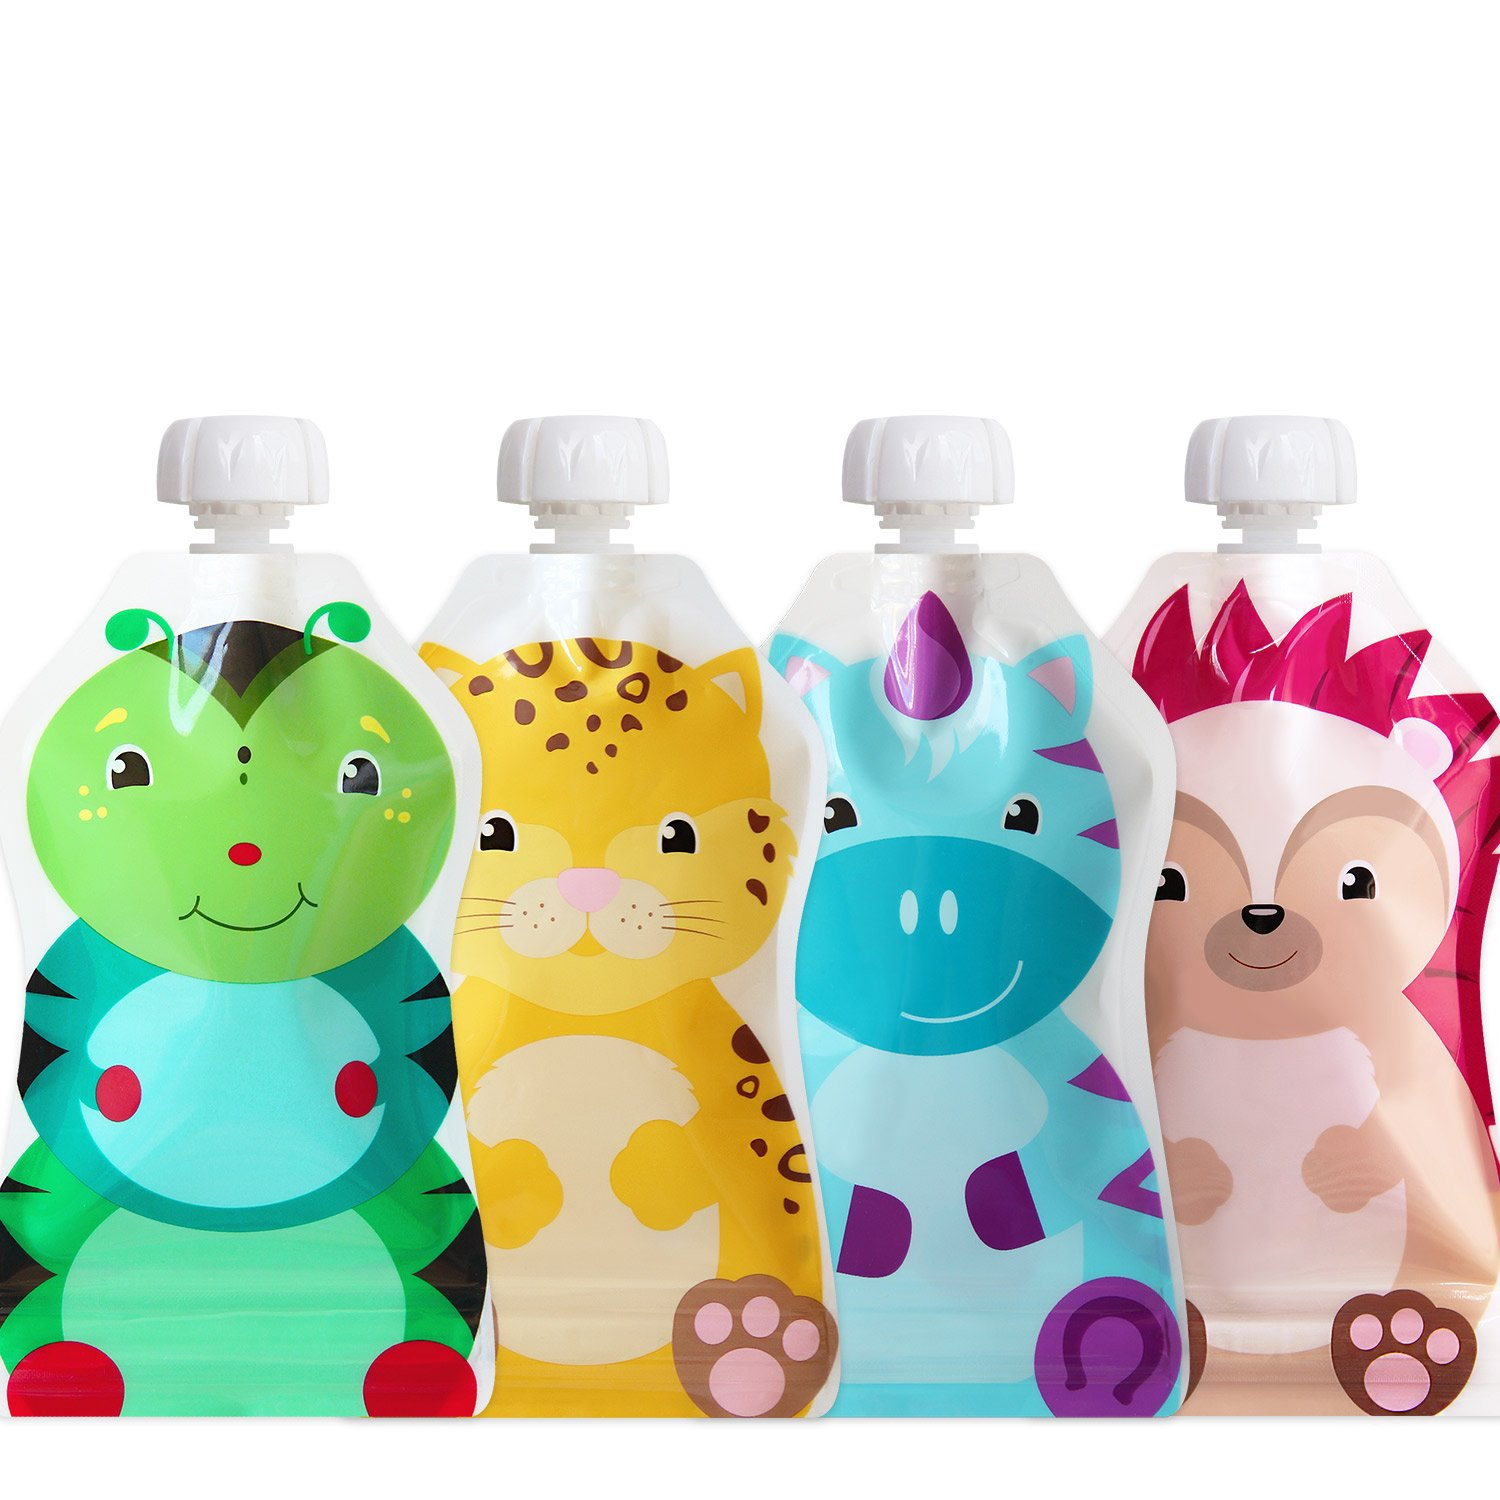 ChooMee Snackn Reusable Food Pouch - 4 CT | 5 oz. | Soft Pouch + Zero Leak Zipper | Enhance their Feeding Experience with Vibrant Colors and Fun Animal Characters SNAC4140A